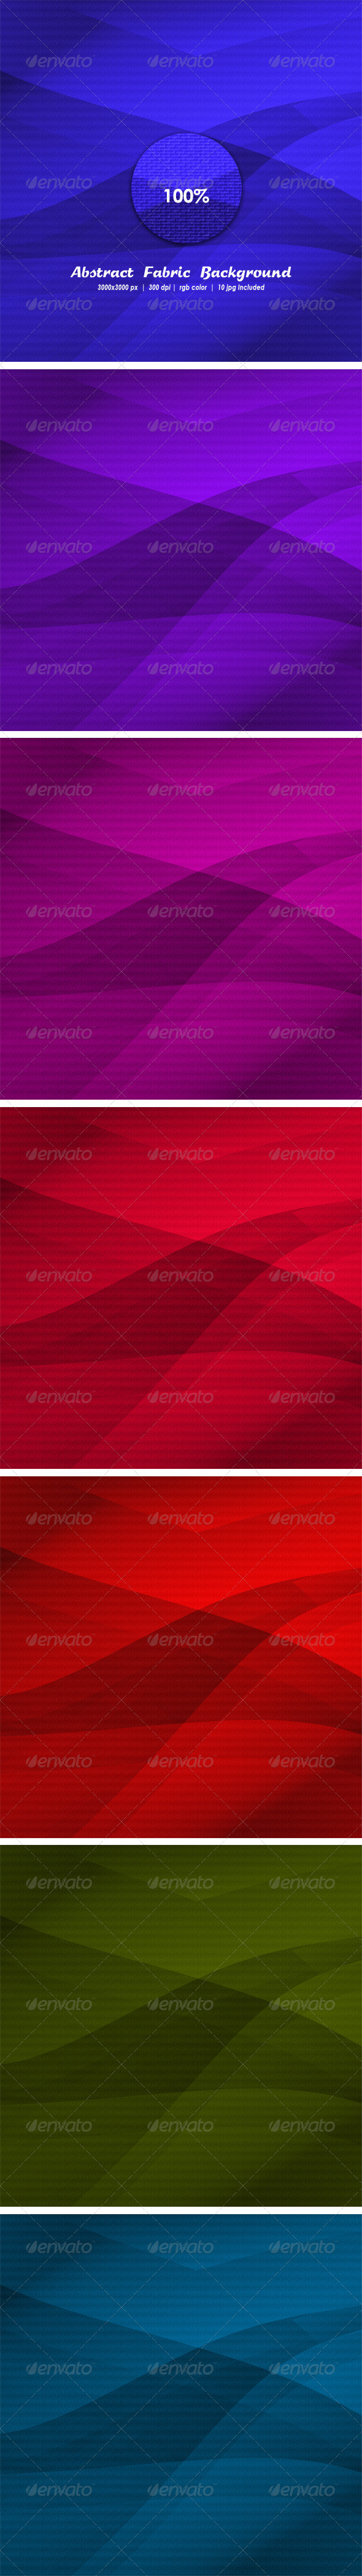 Abstract Fabric Background Set